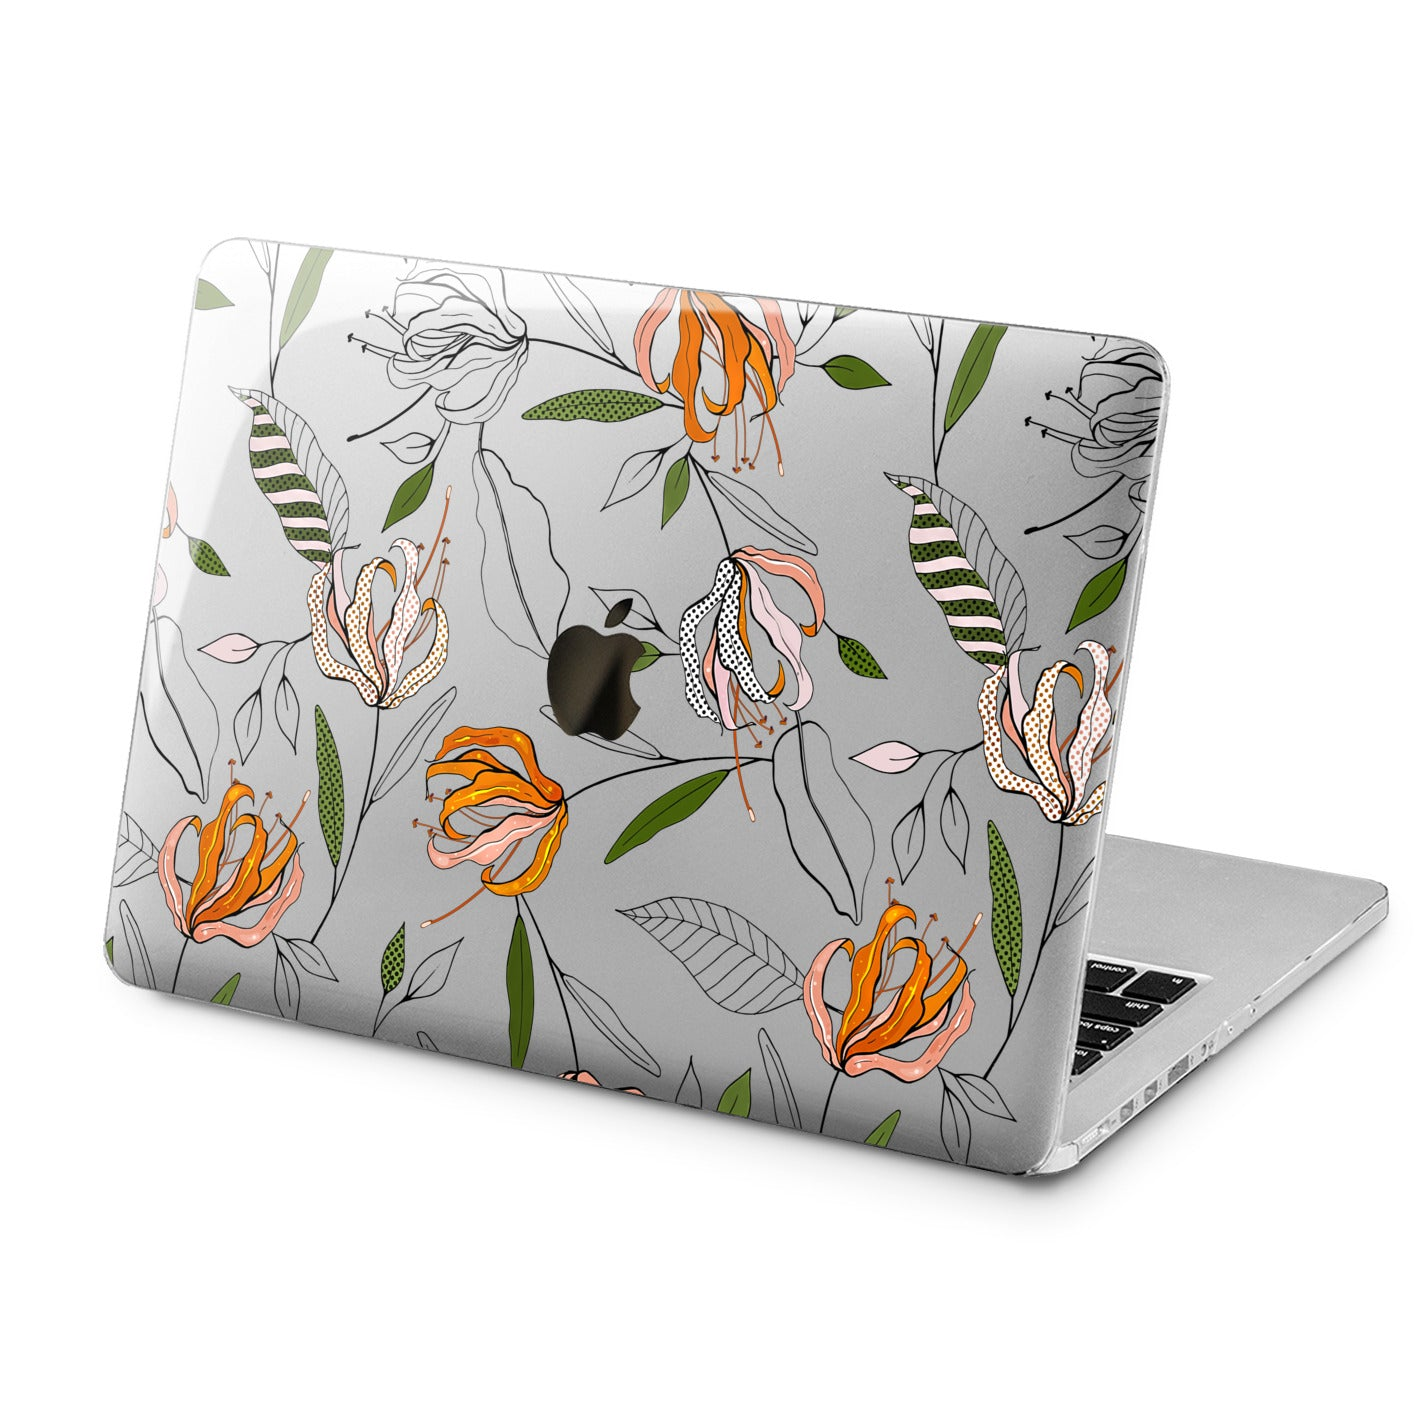 Lex Altern Lex Altern Floral Pattern Case for your Laptop Apple Macbook.